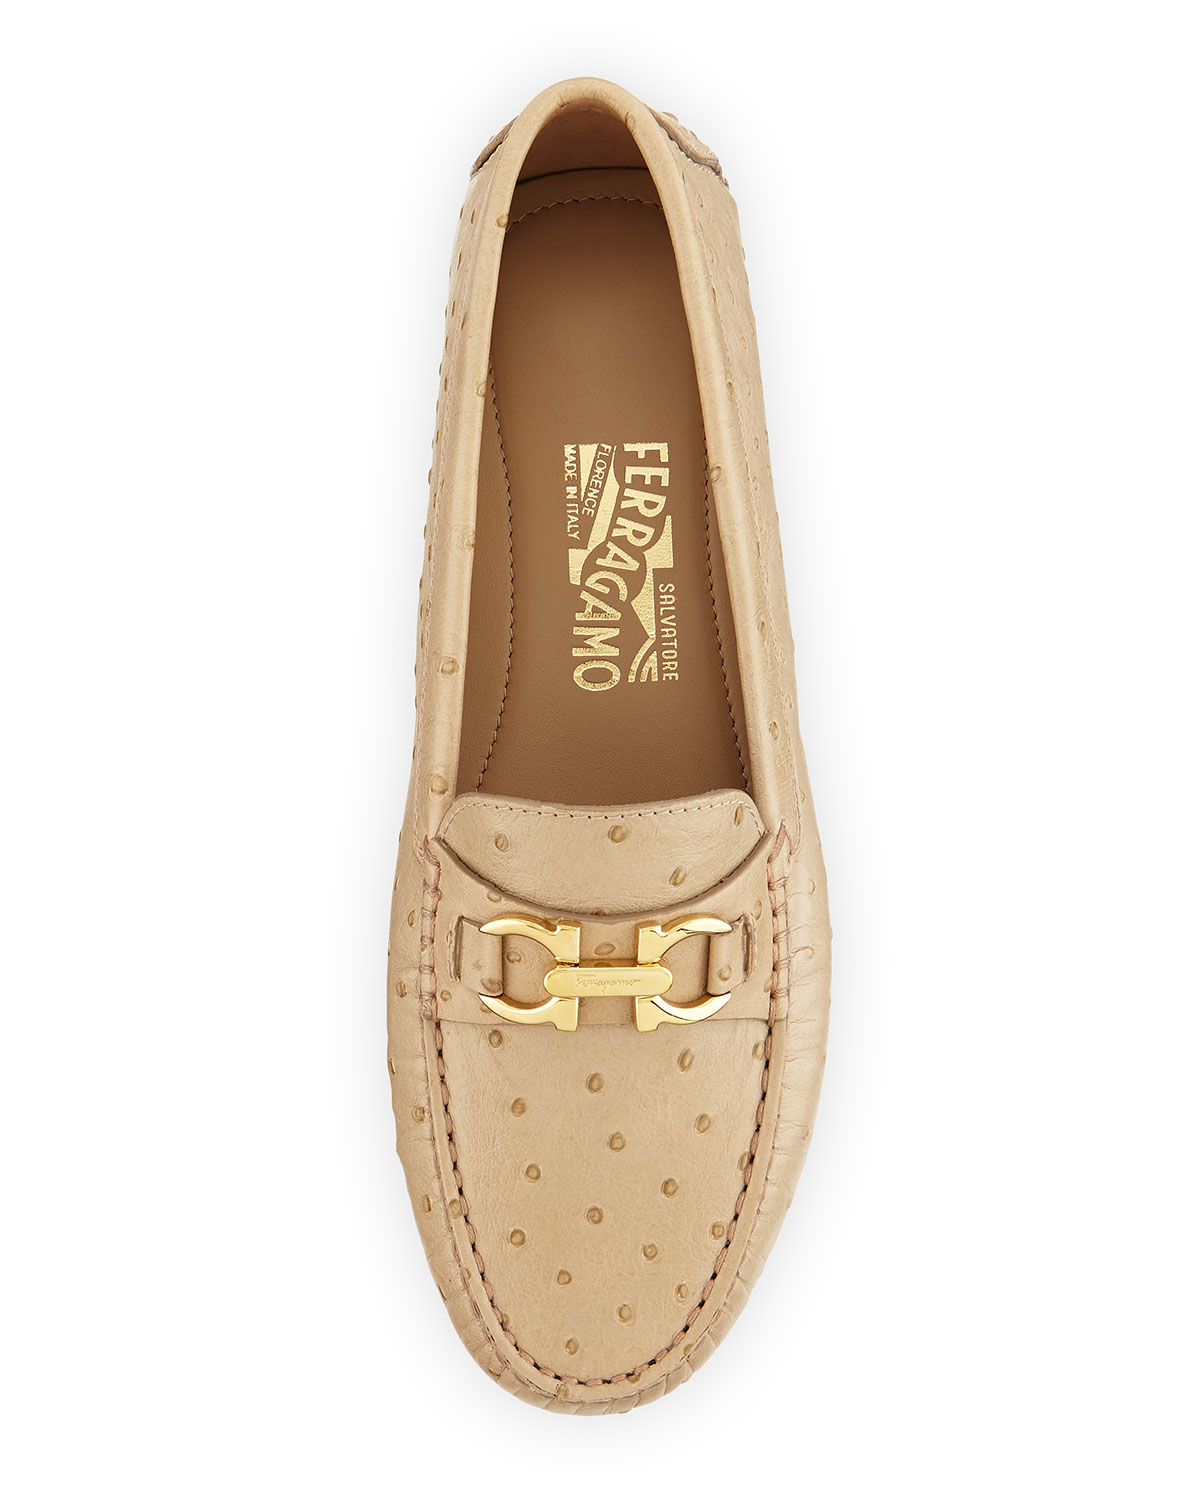 Cream Colored Flat Shoes